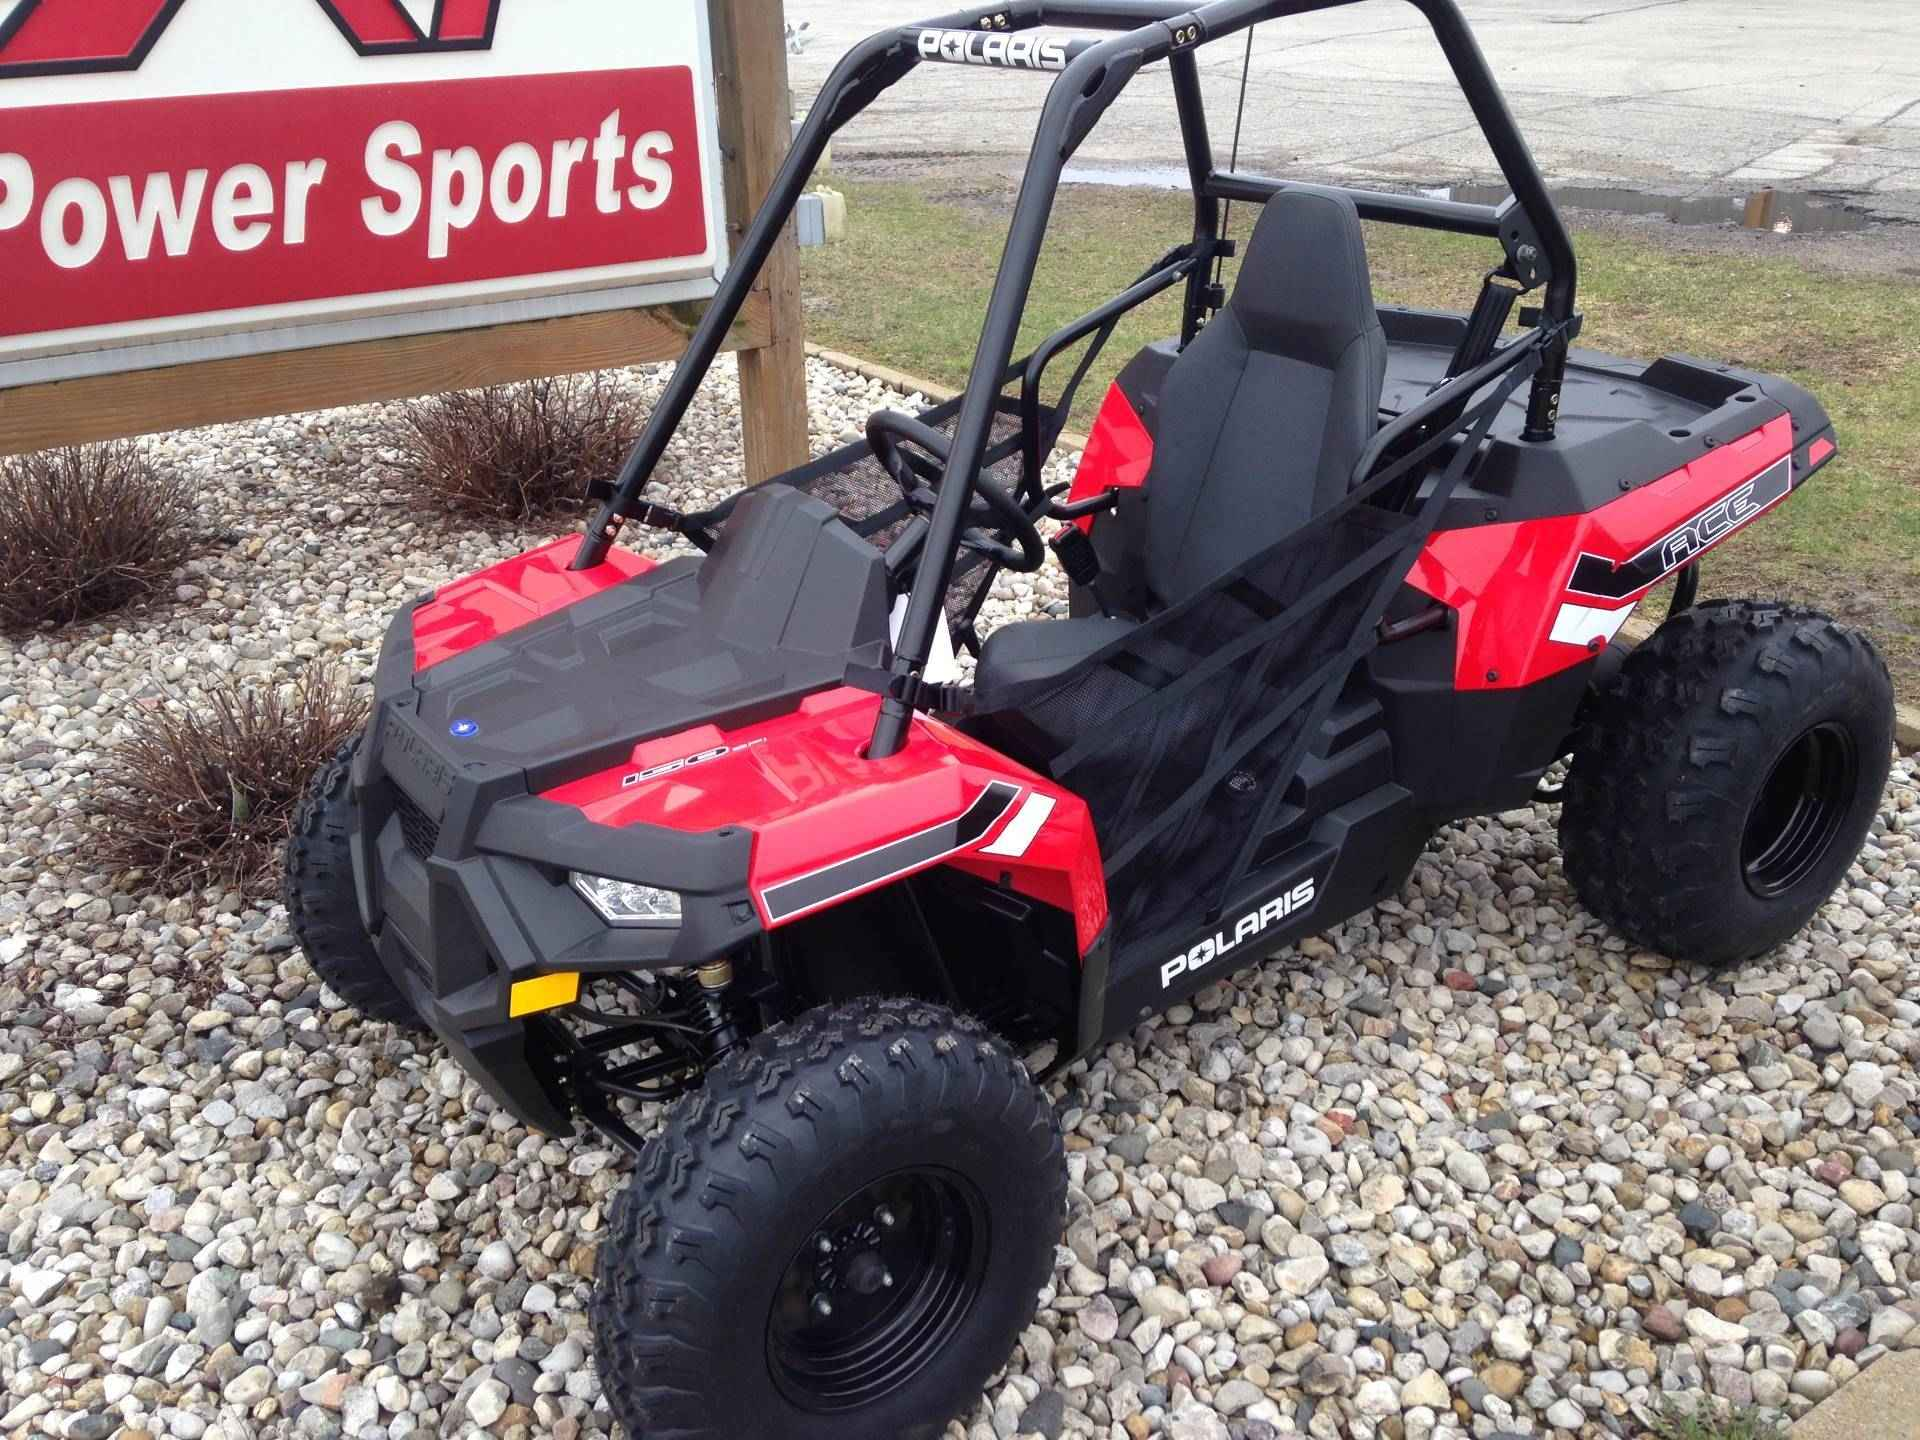 Polaris Ace For Sale >> New 2017 Polaris Ace 150 Efi Atvs For Sale In Wisconsin On Atvtrades Com